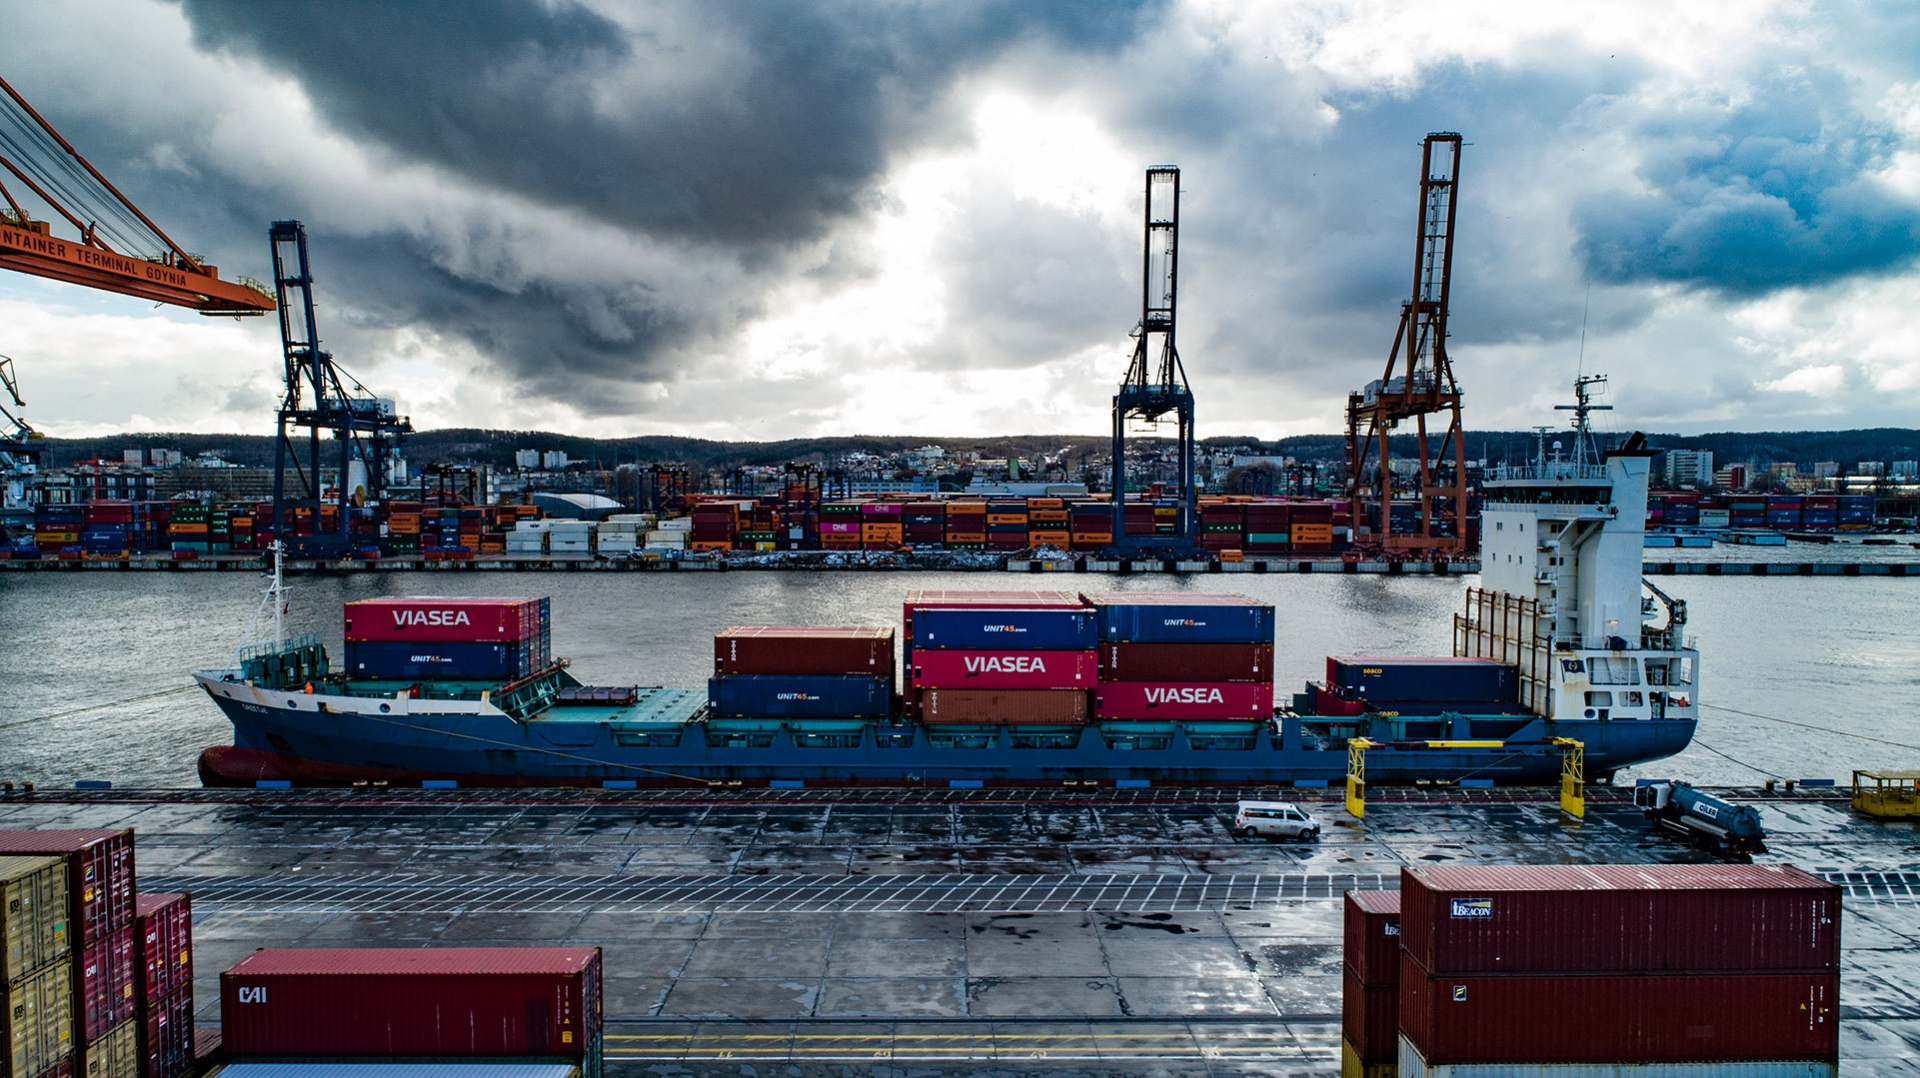 Port of Gdynia – Calling of New Viasea container line first ship [photo, video]